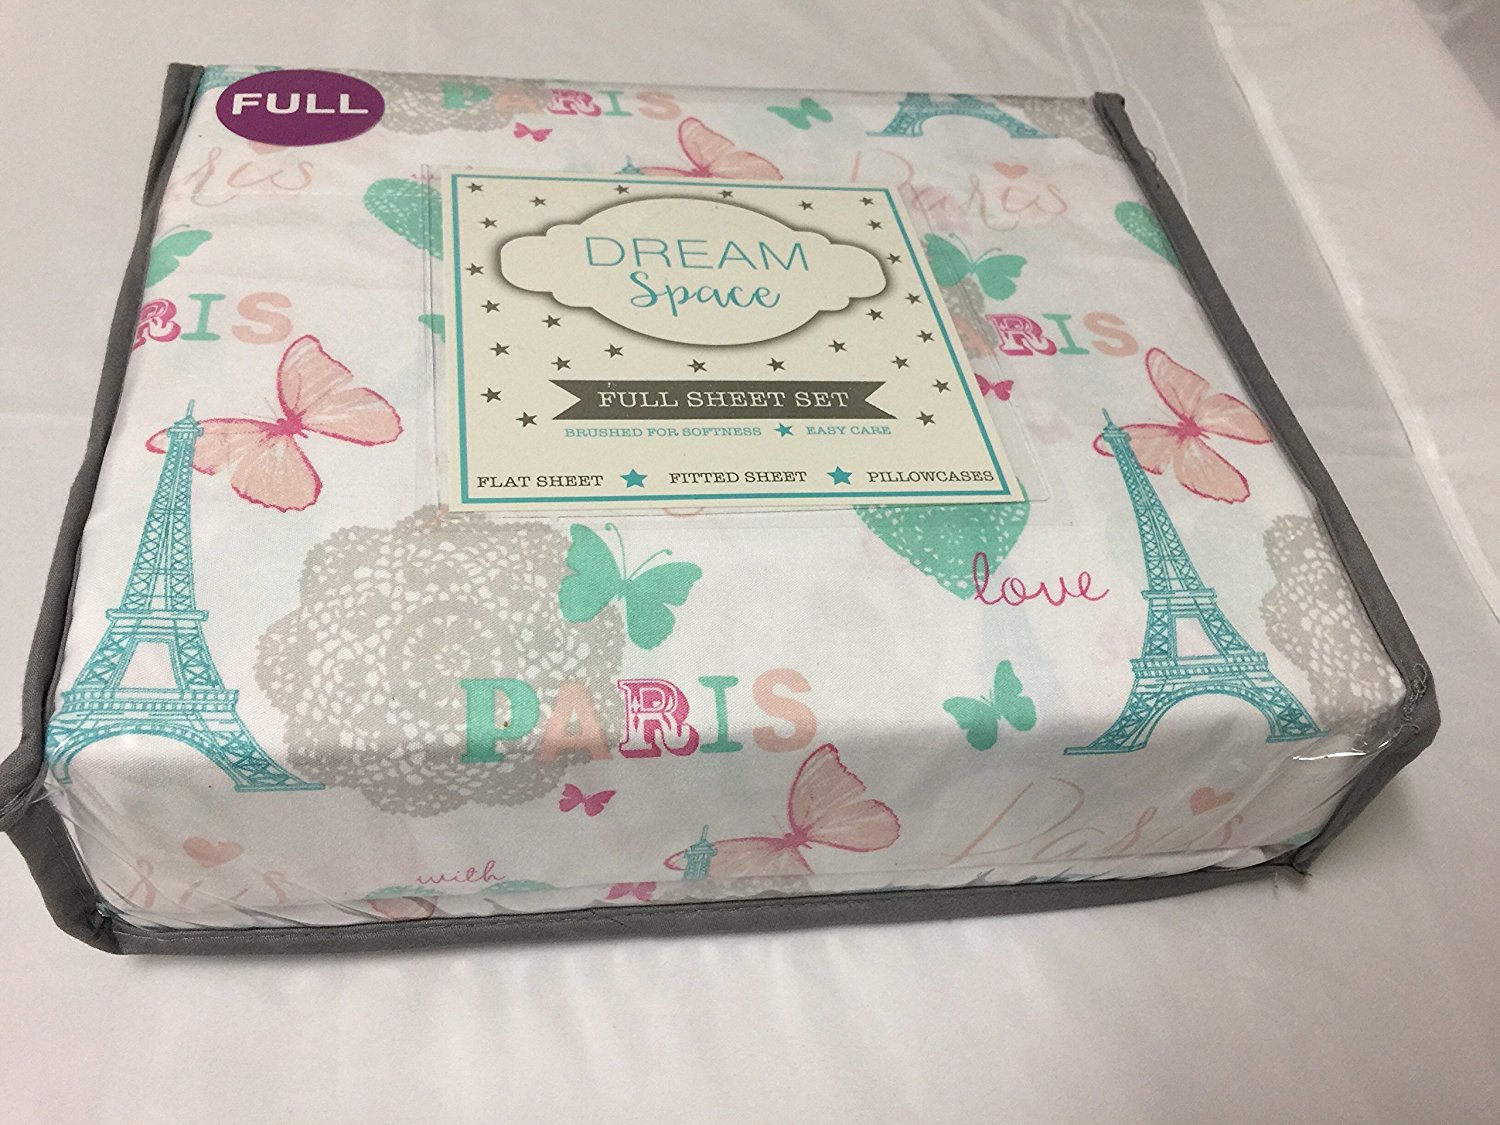 Dream Space 4-Piece FULL Sheet Set, Paris Love Eiffel Tower Hearts Butterfly ~ Pastel Green, Pink, Cream